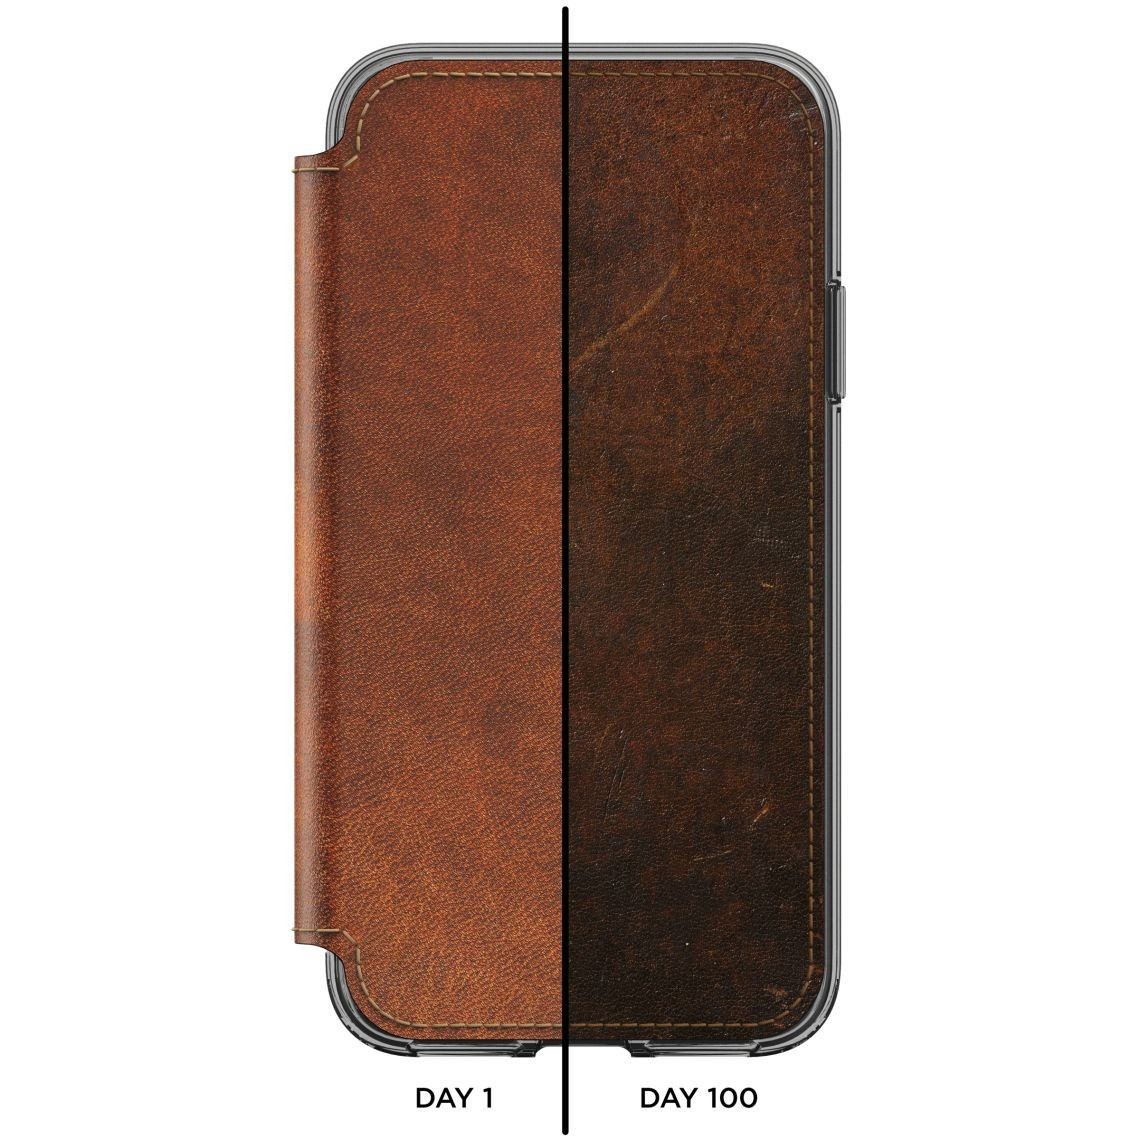 Nomad Horween Clear Wallet Folio for iPhone X/Xs - Rustic Brown, CASE-IX-FOLIO-CLEAR-BRN